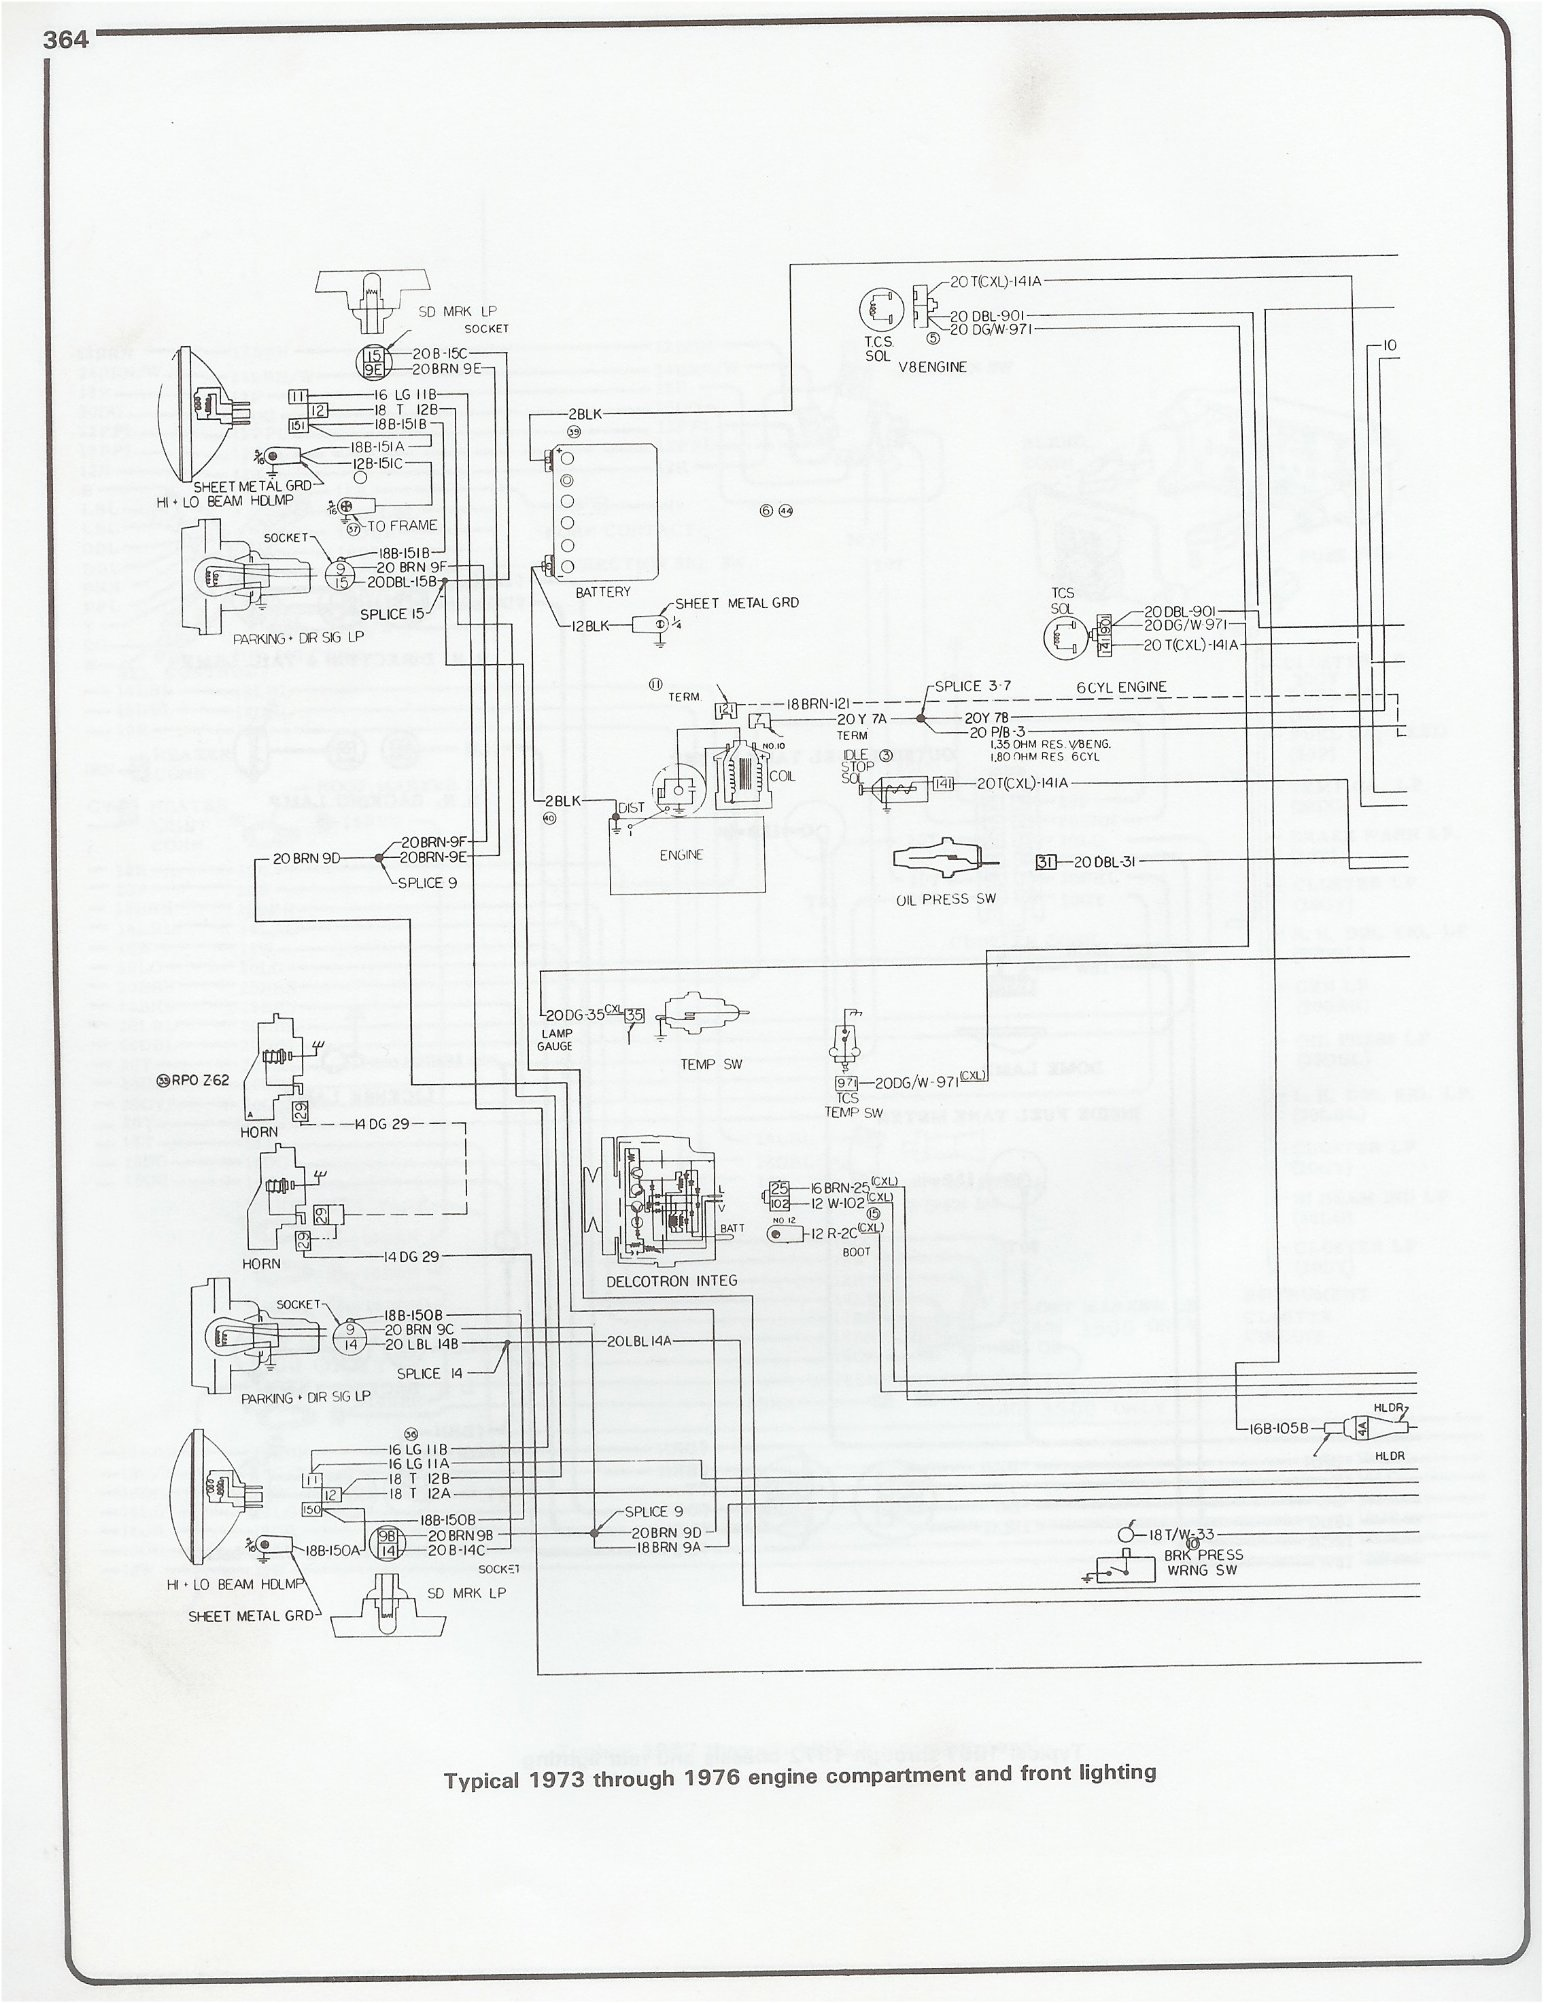 Complete 73 87 Wiring Diagrams Furthermore Wiper Motor Diagram Together With 76 Engine And Front Lighting